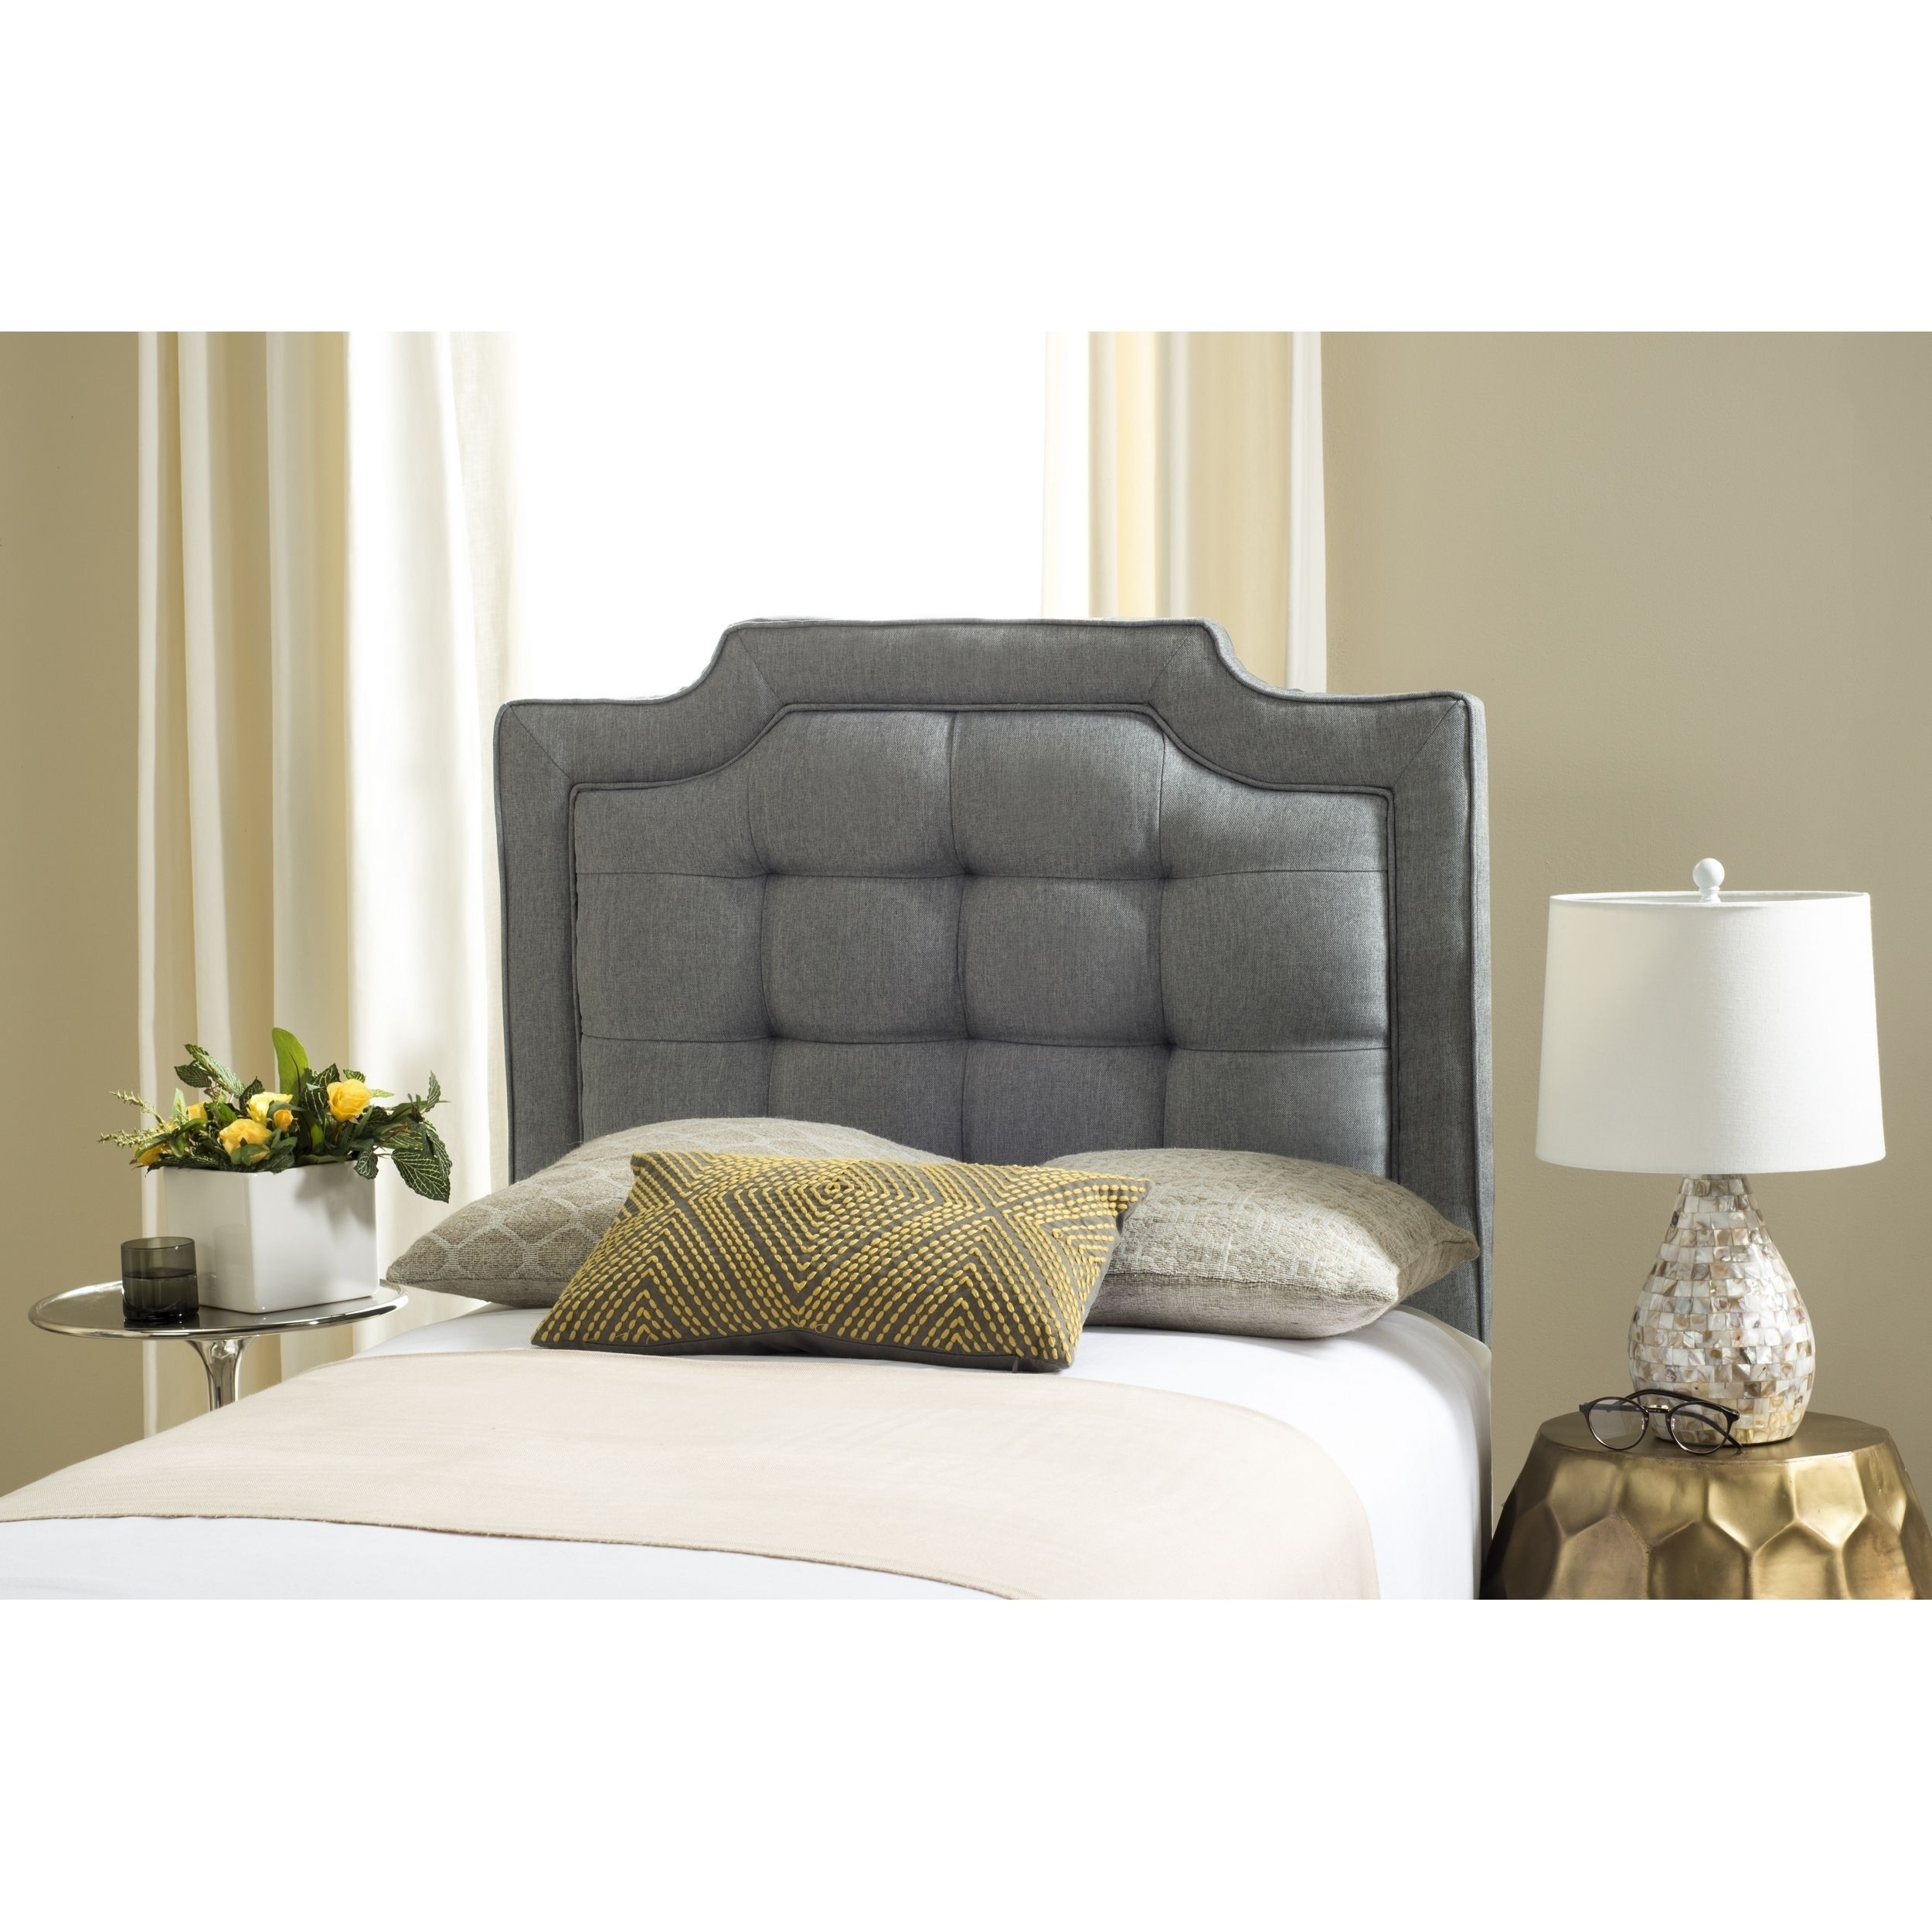 Safavieh Saphire Grey Upholstered Tufted Headboard Twin Gray Home Decor Modern Headboard Modern Decoration